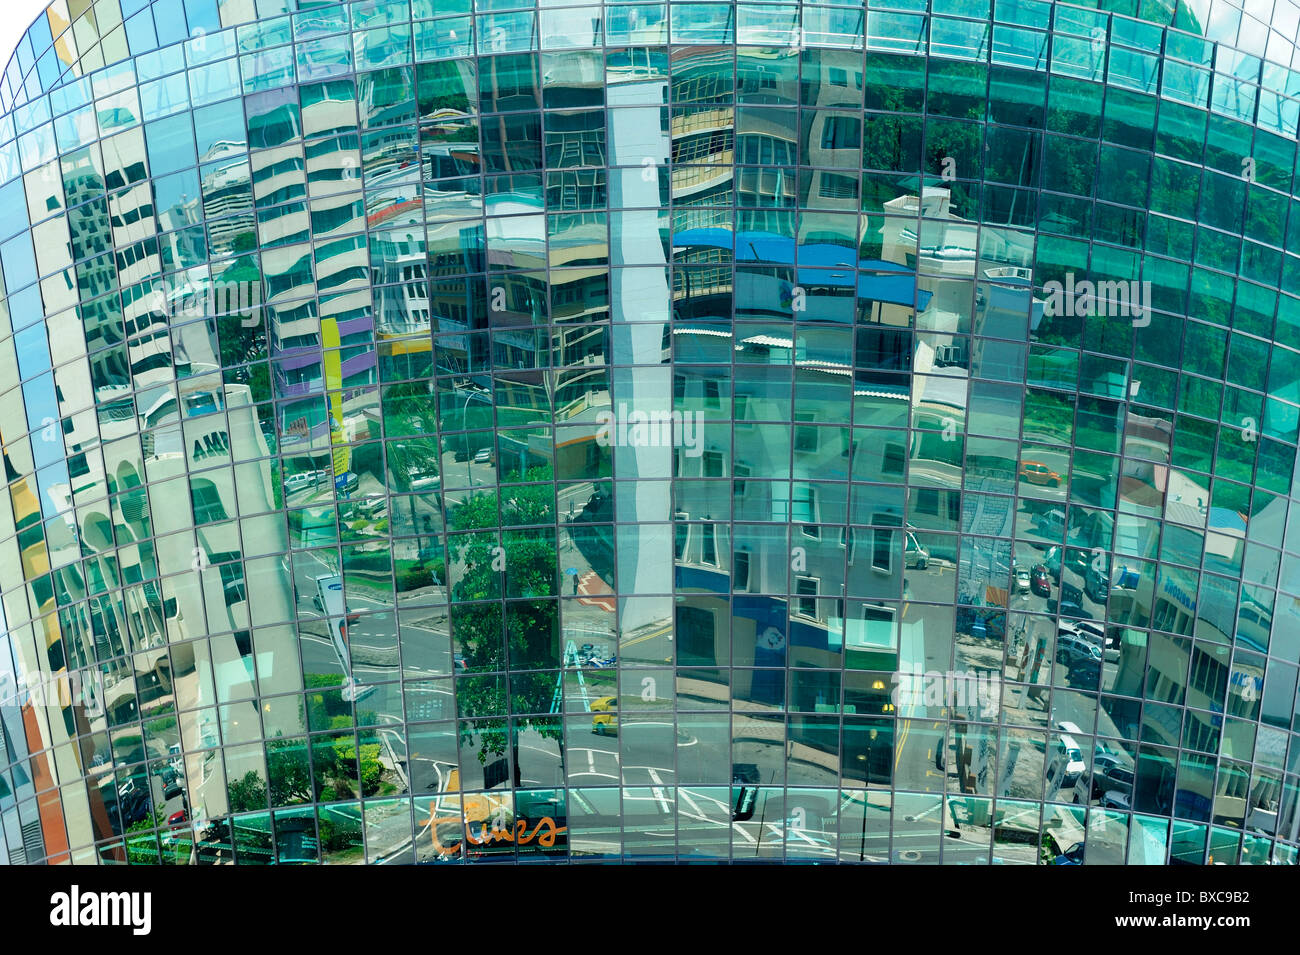 Reflections on glass fronted building in Kota Kinabalu, Sabah - Stock Image